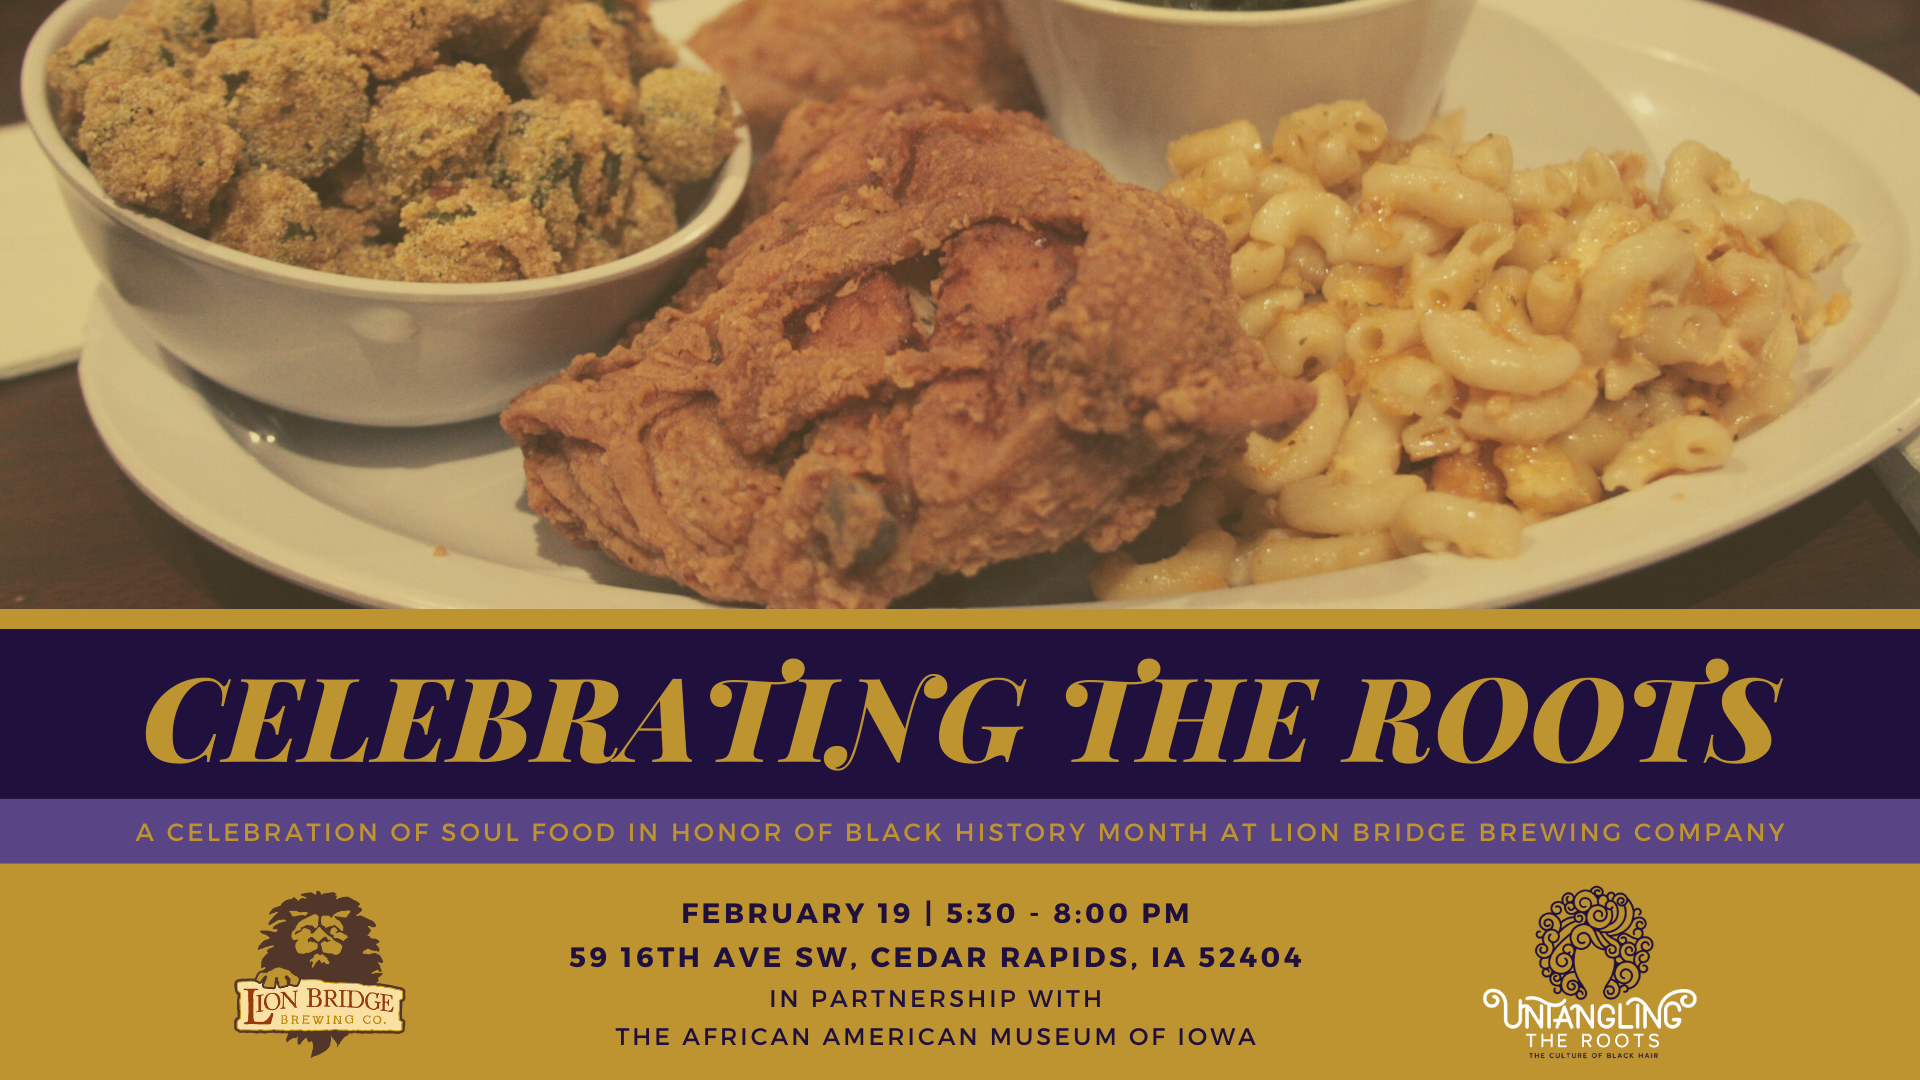 Celebrating_the_roots_fb_event